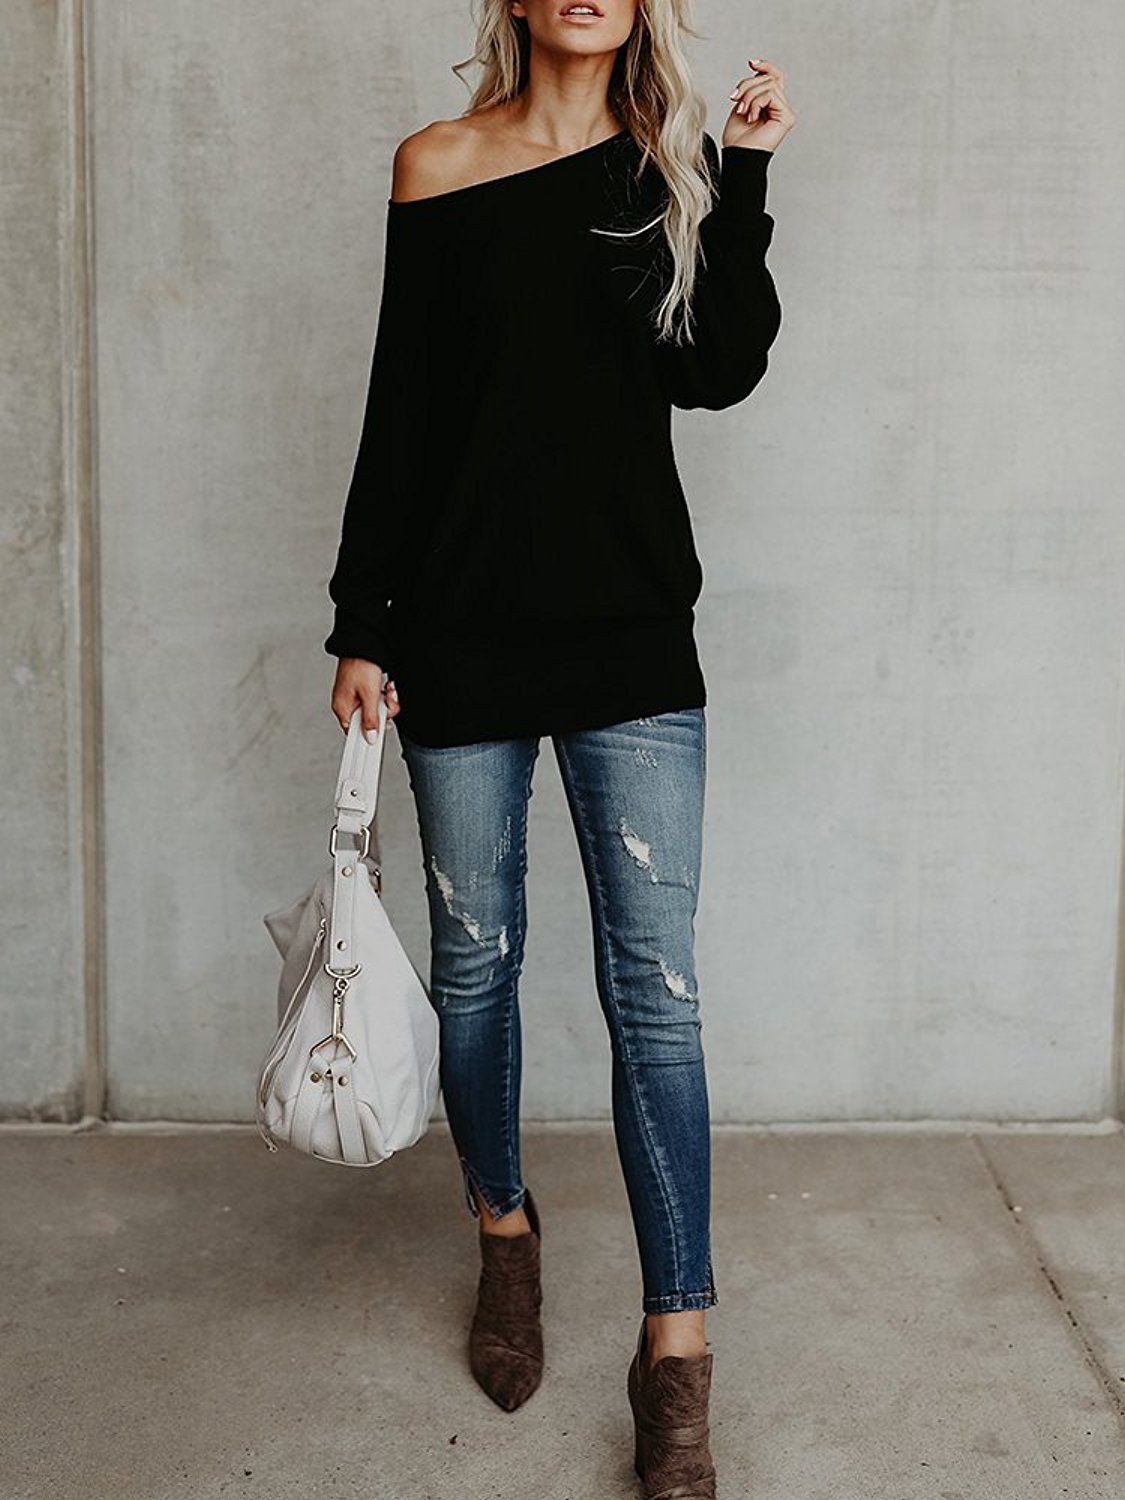 How to oversized wear sweaters pinterest catalog photo